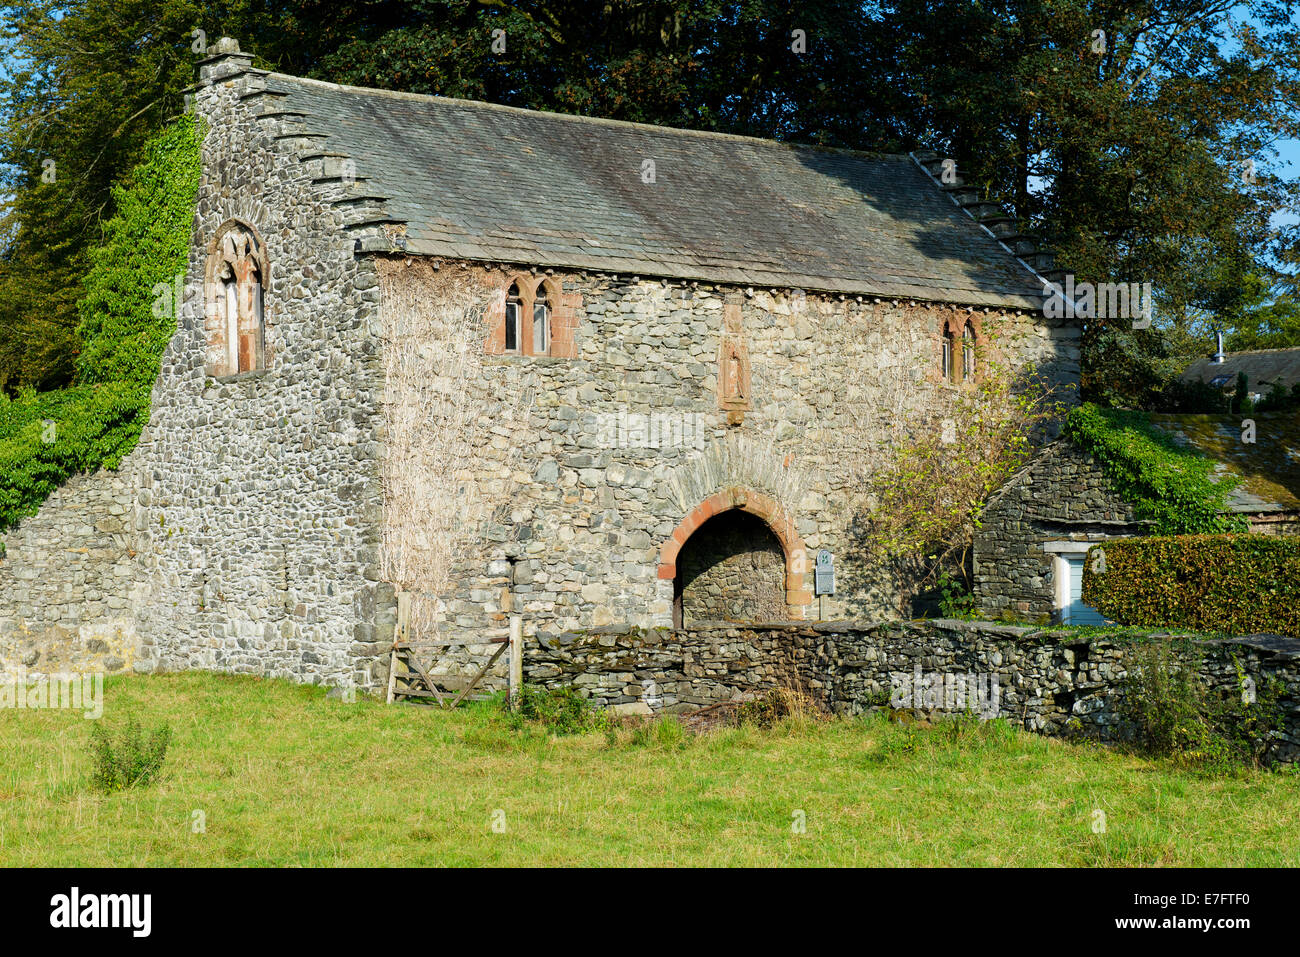 The Old Courthouse, near Hawkshead, Lake District National Park, Cumbria, England UK - Stock Image